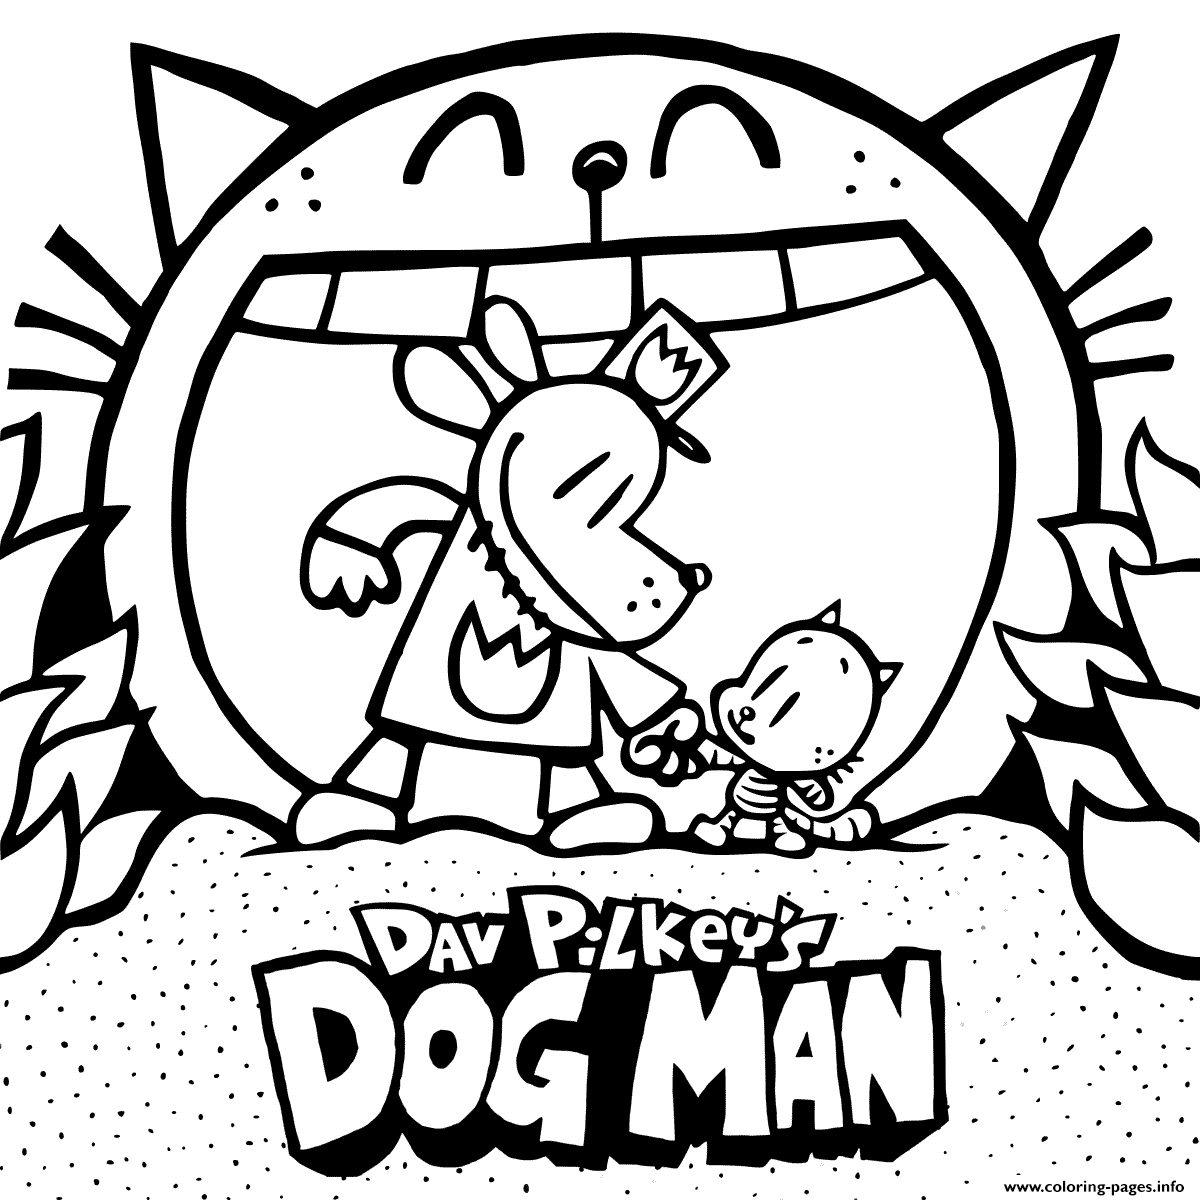 Dog Man Lords Of The Fleas Coloring Page Coloring Pages Printable